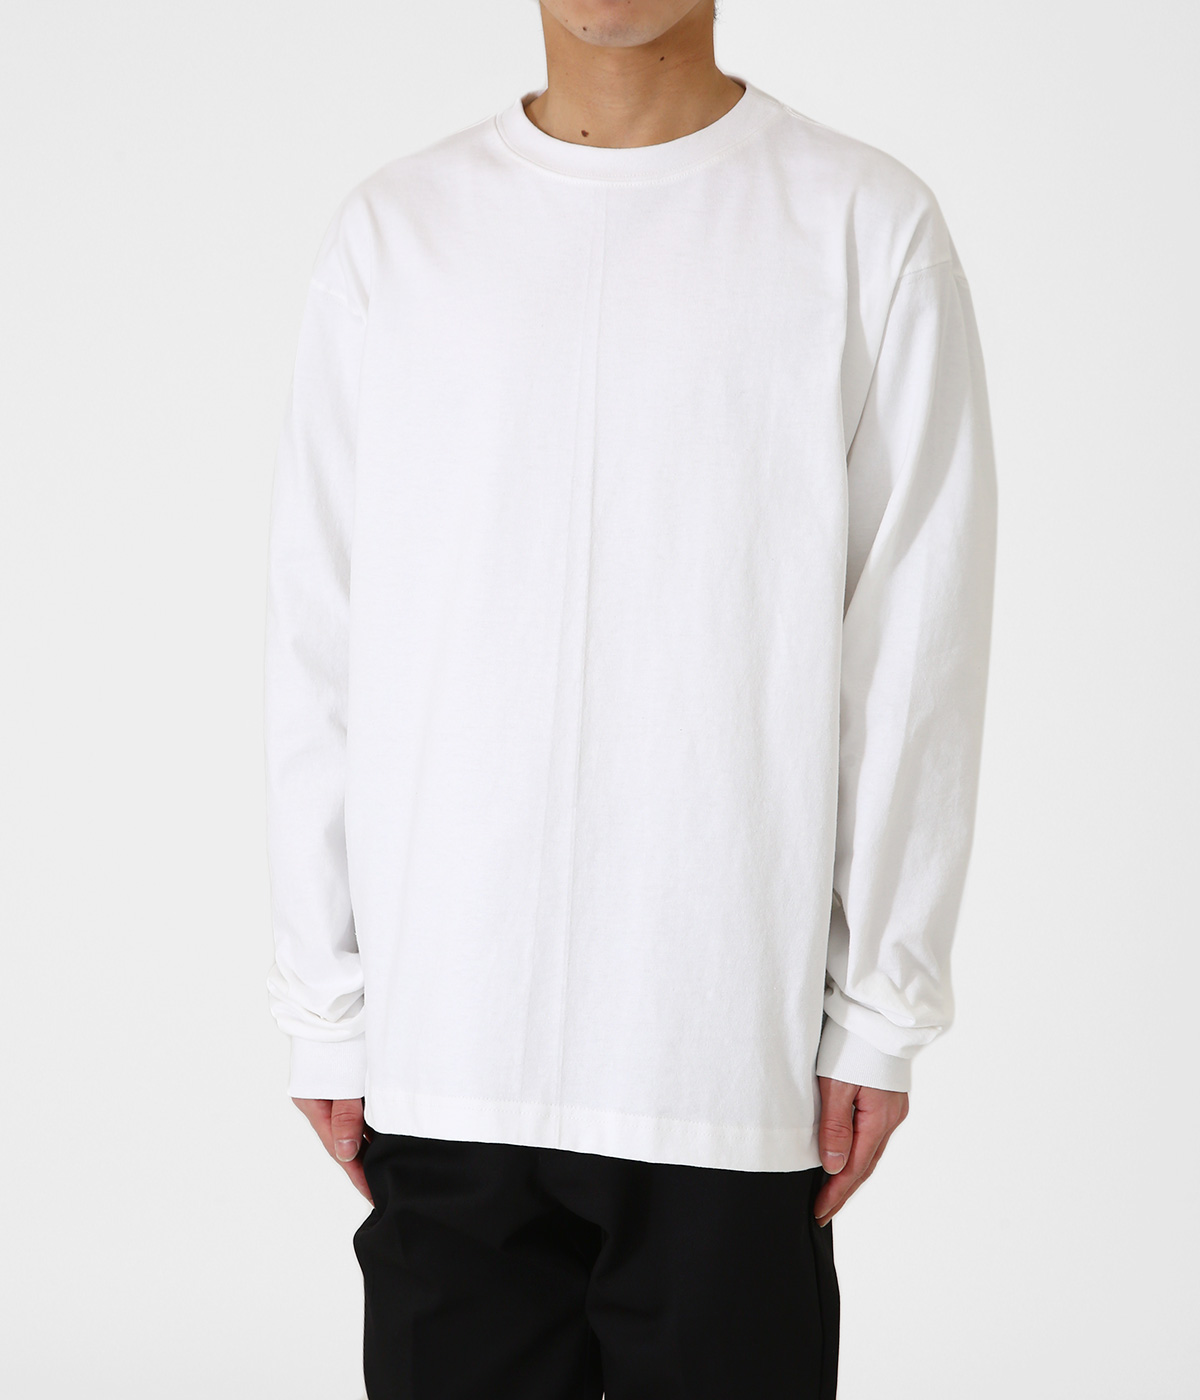 8oz MAX WEIGHT L/S T-SHIRT